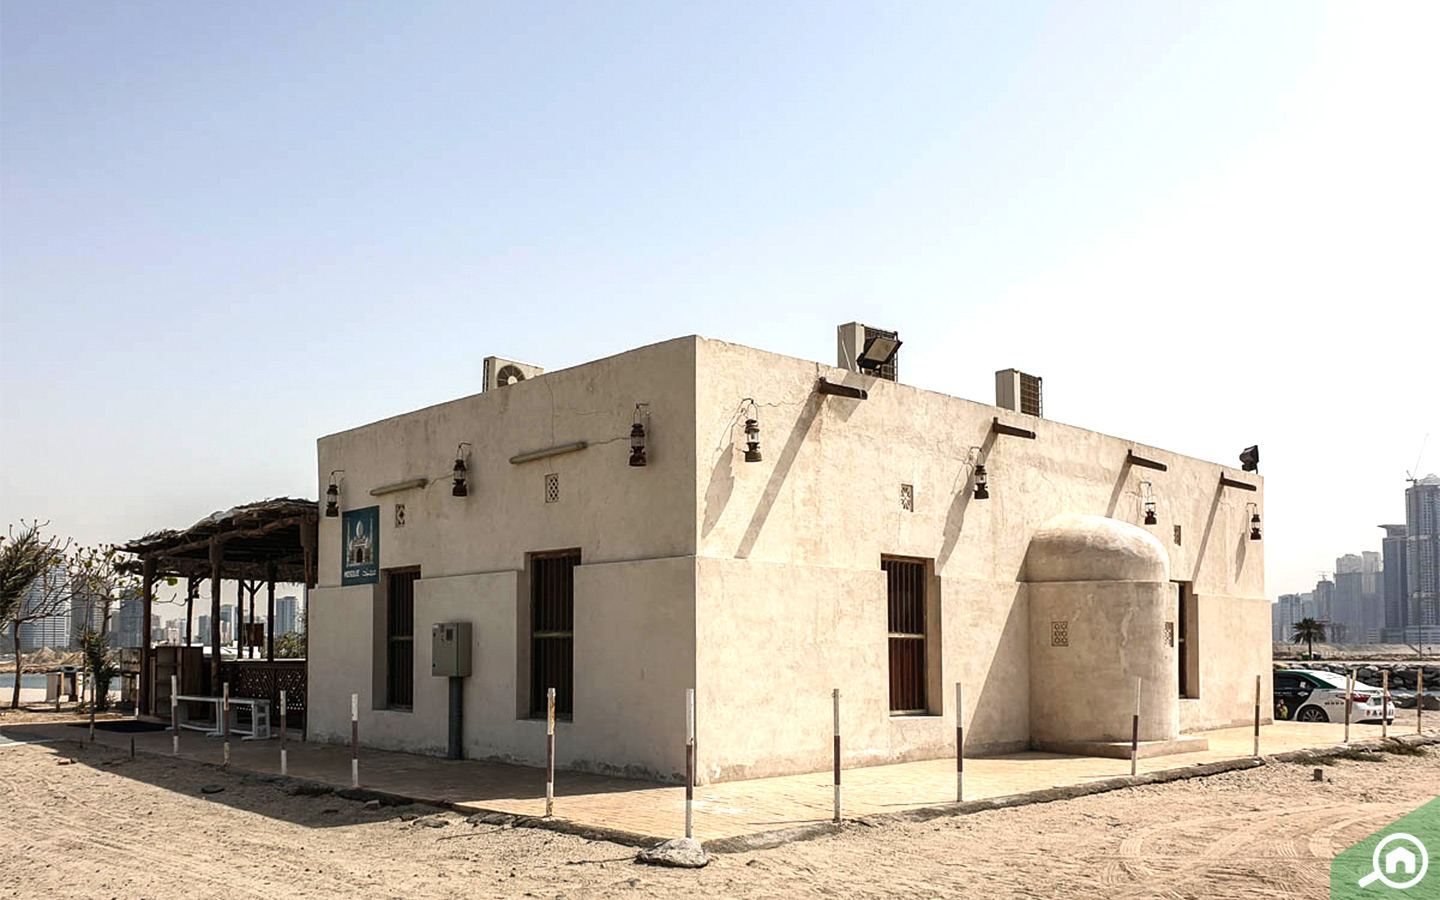 Salamah Ibn Al Akwa Mosque in al khan